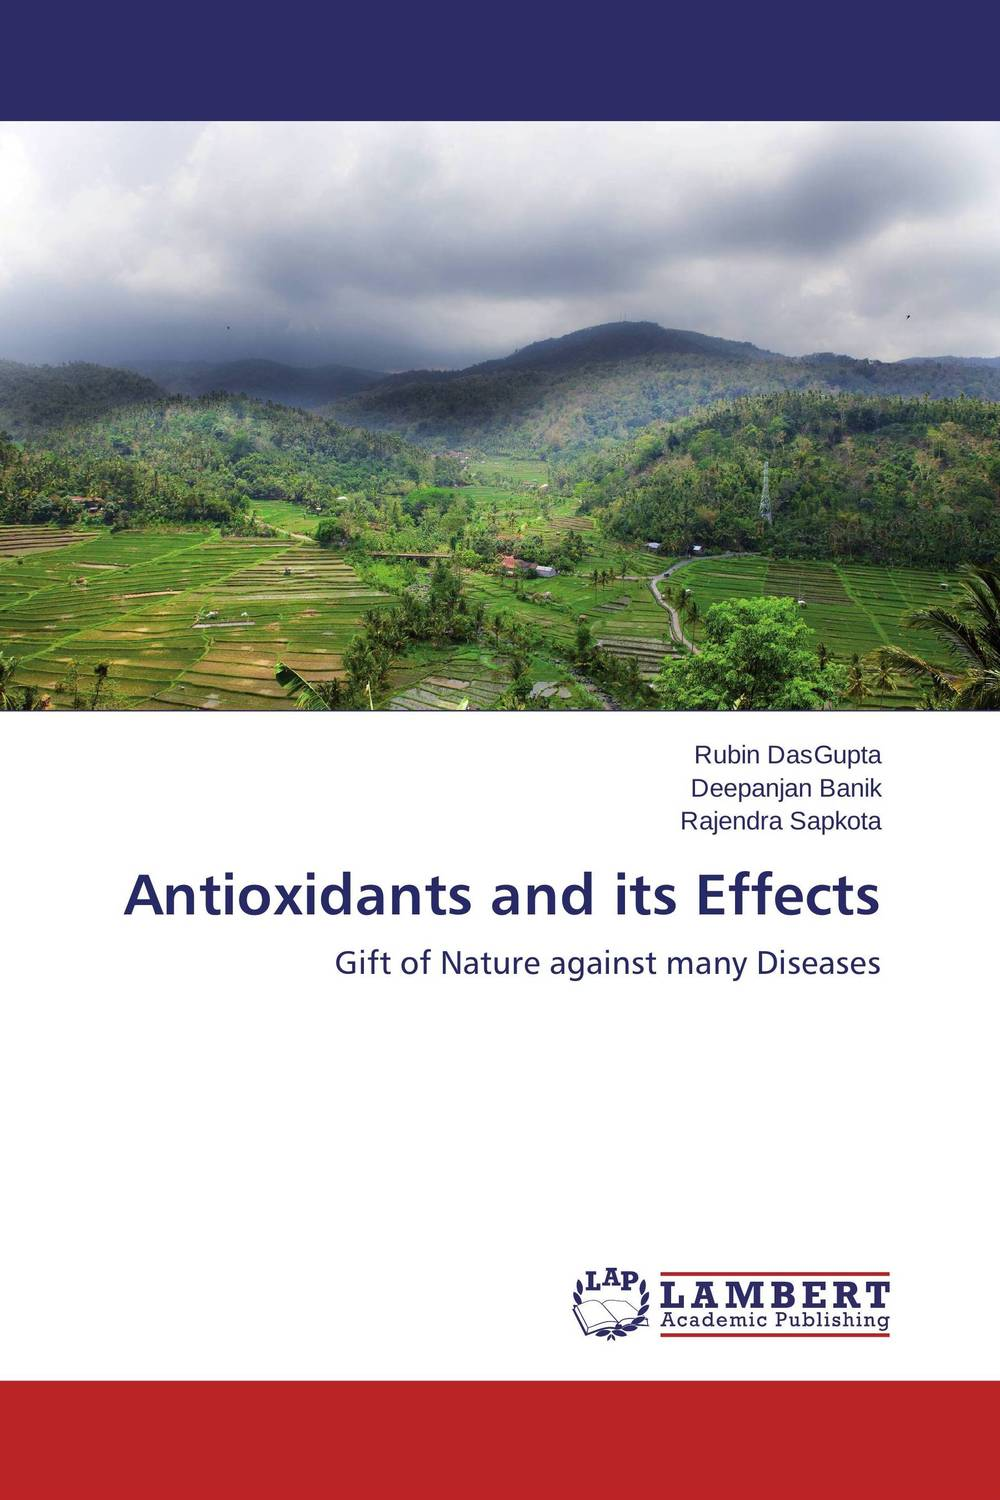 Antioxidants and its Effects duncan bruce the dream cafe lessons in the art of radical innovation